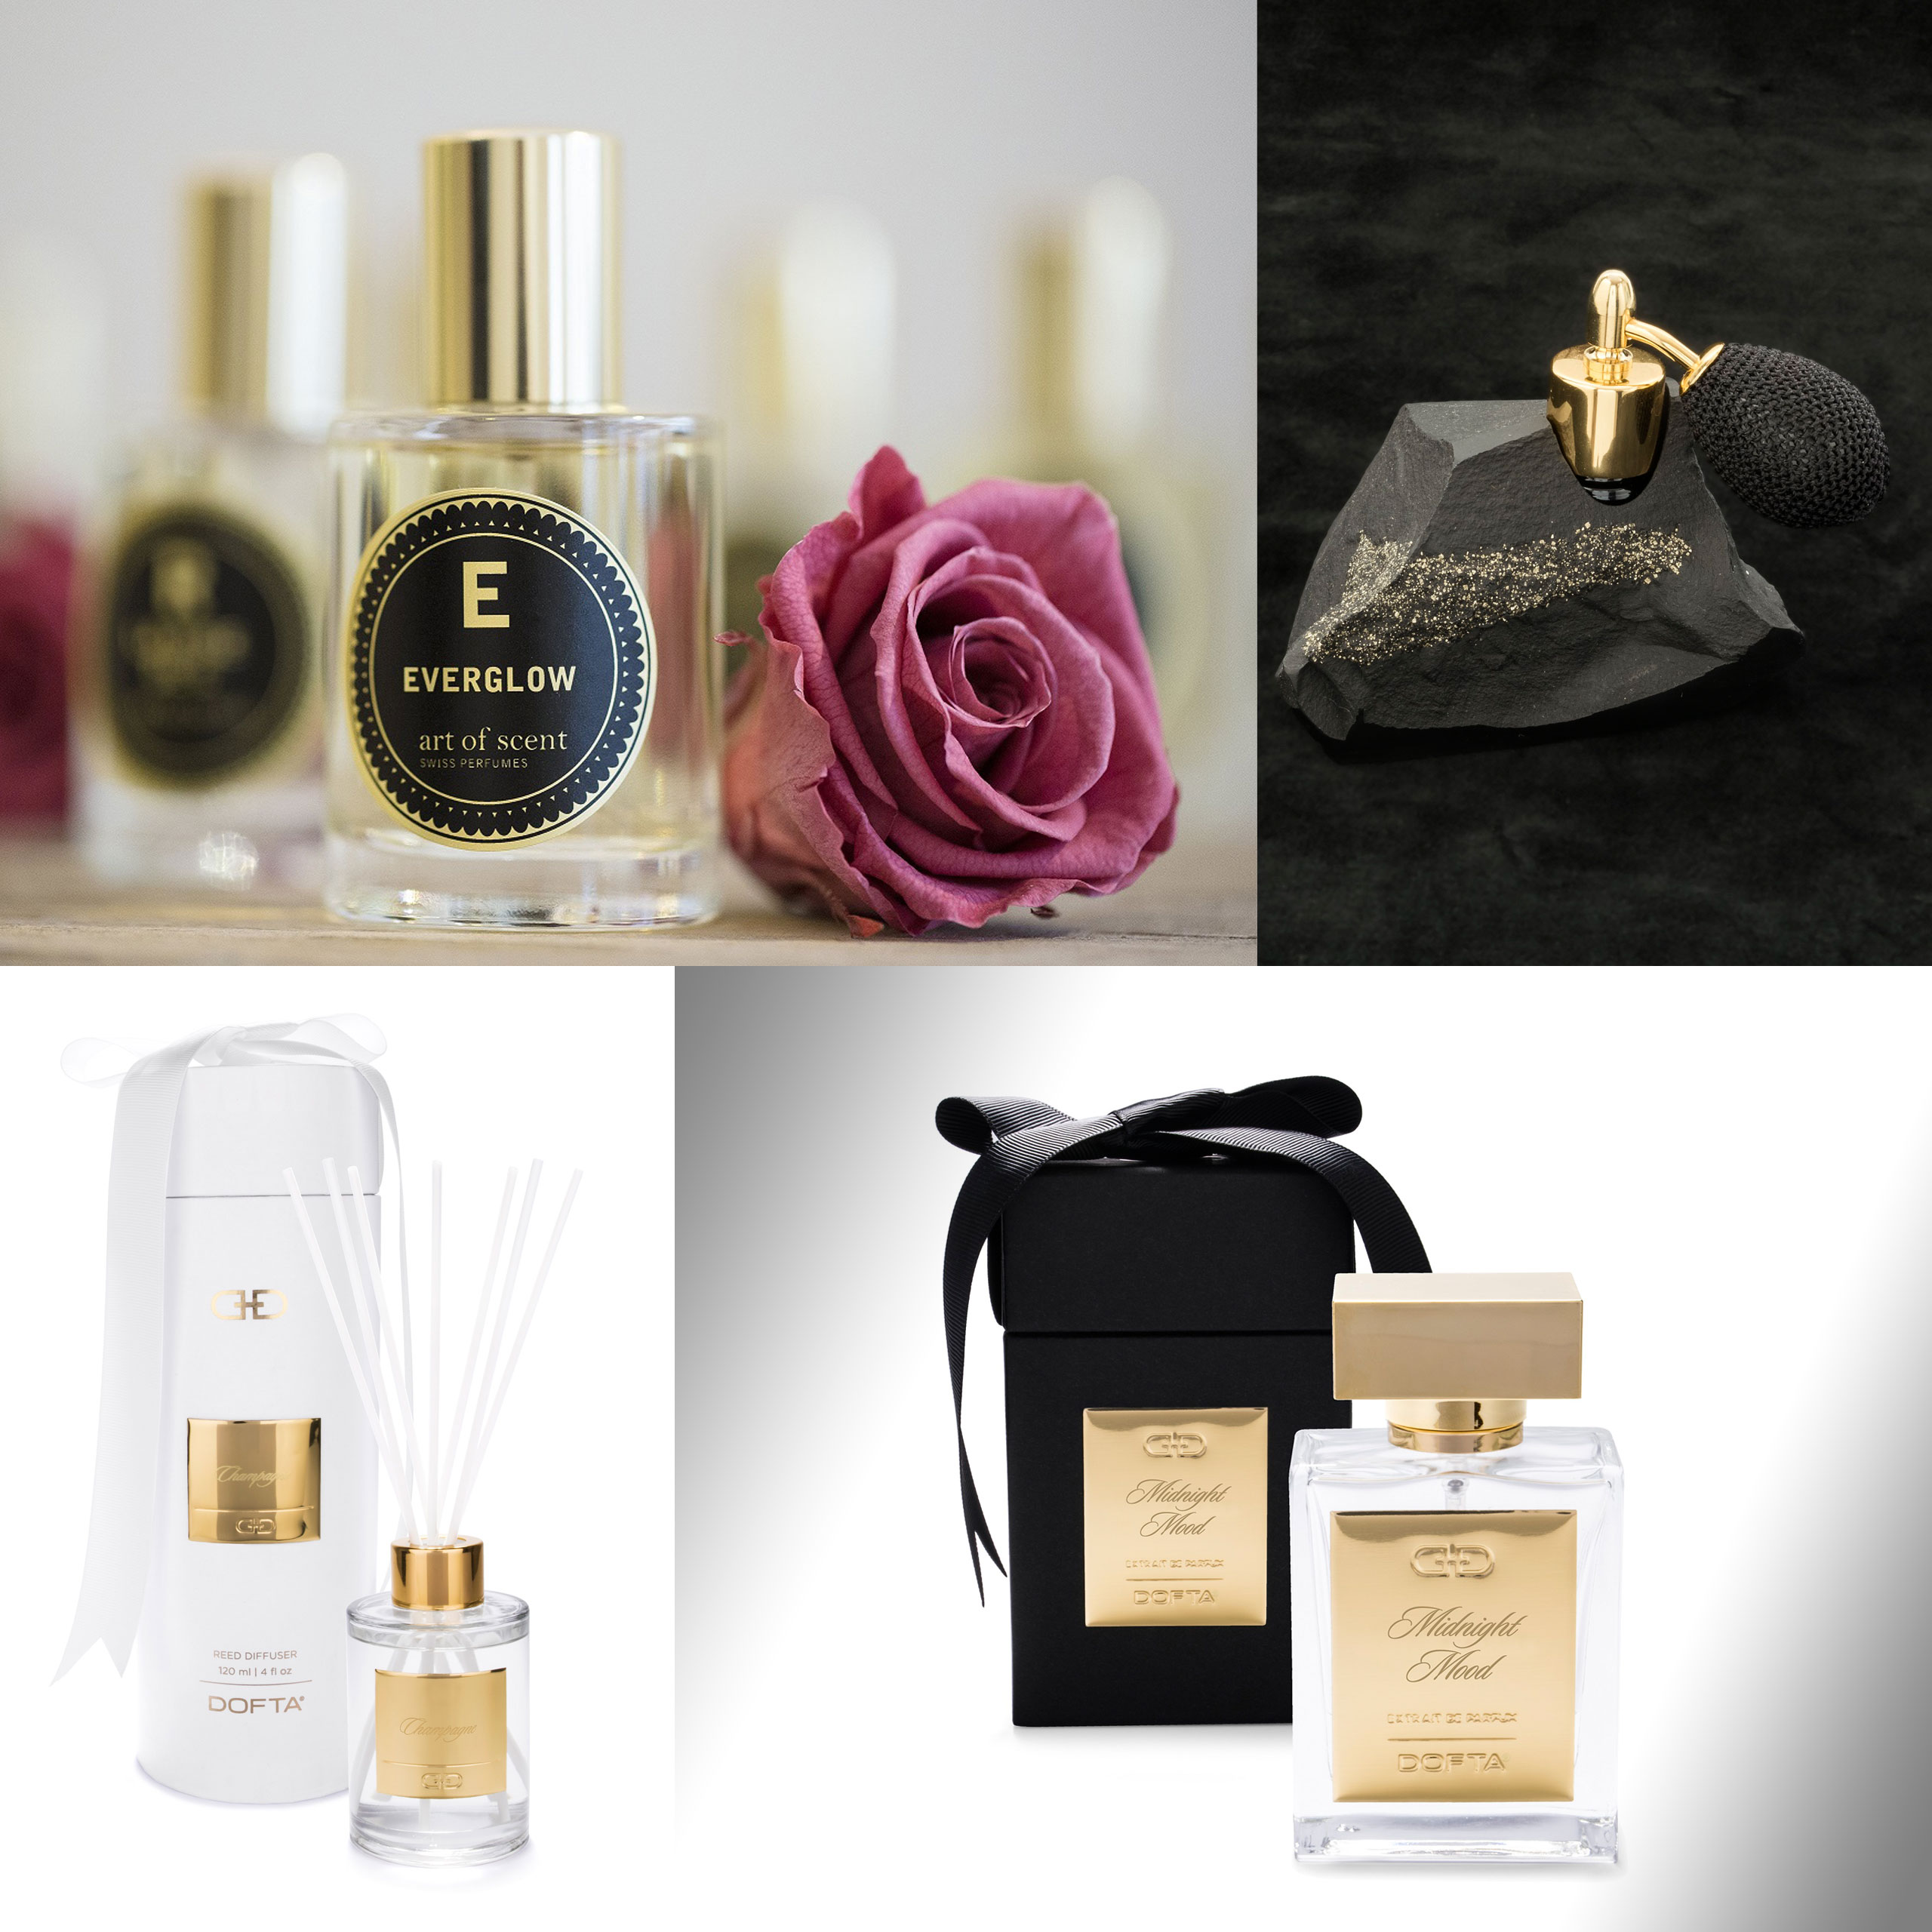 Beautyworld Middle East - Perfumes inspired by therapeutic work with blind children among niche fragrances set for debut at Beautyworld Middle East 2018